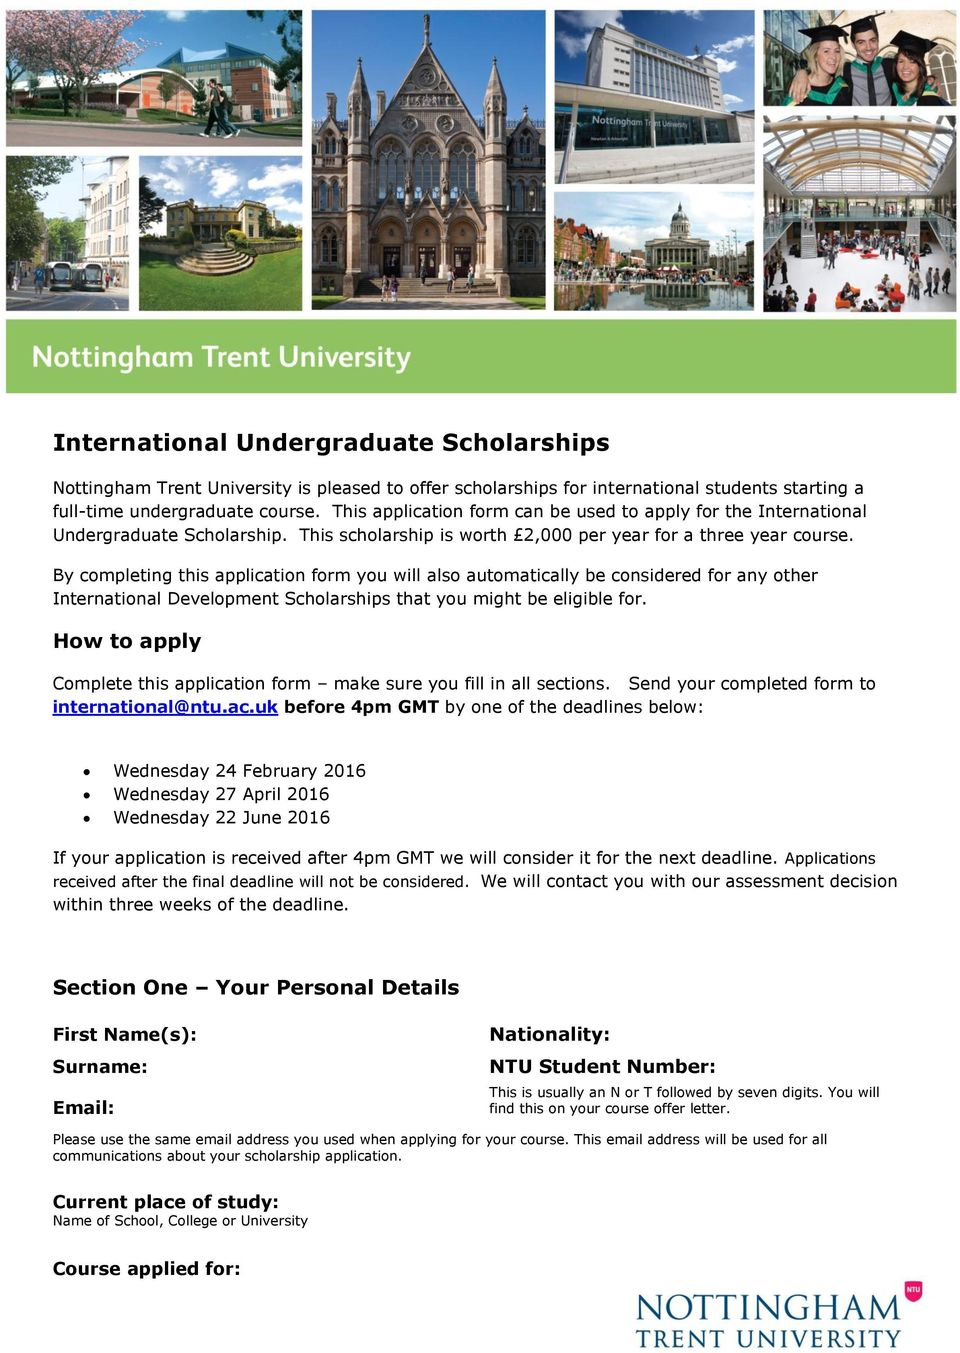 By completing this application form you will also automatically be considered for any other International Development Scholarships that you might be eligible for.